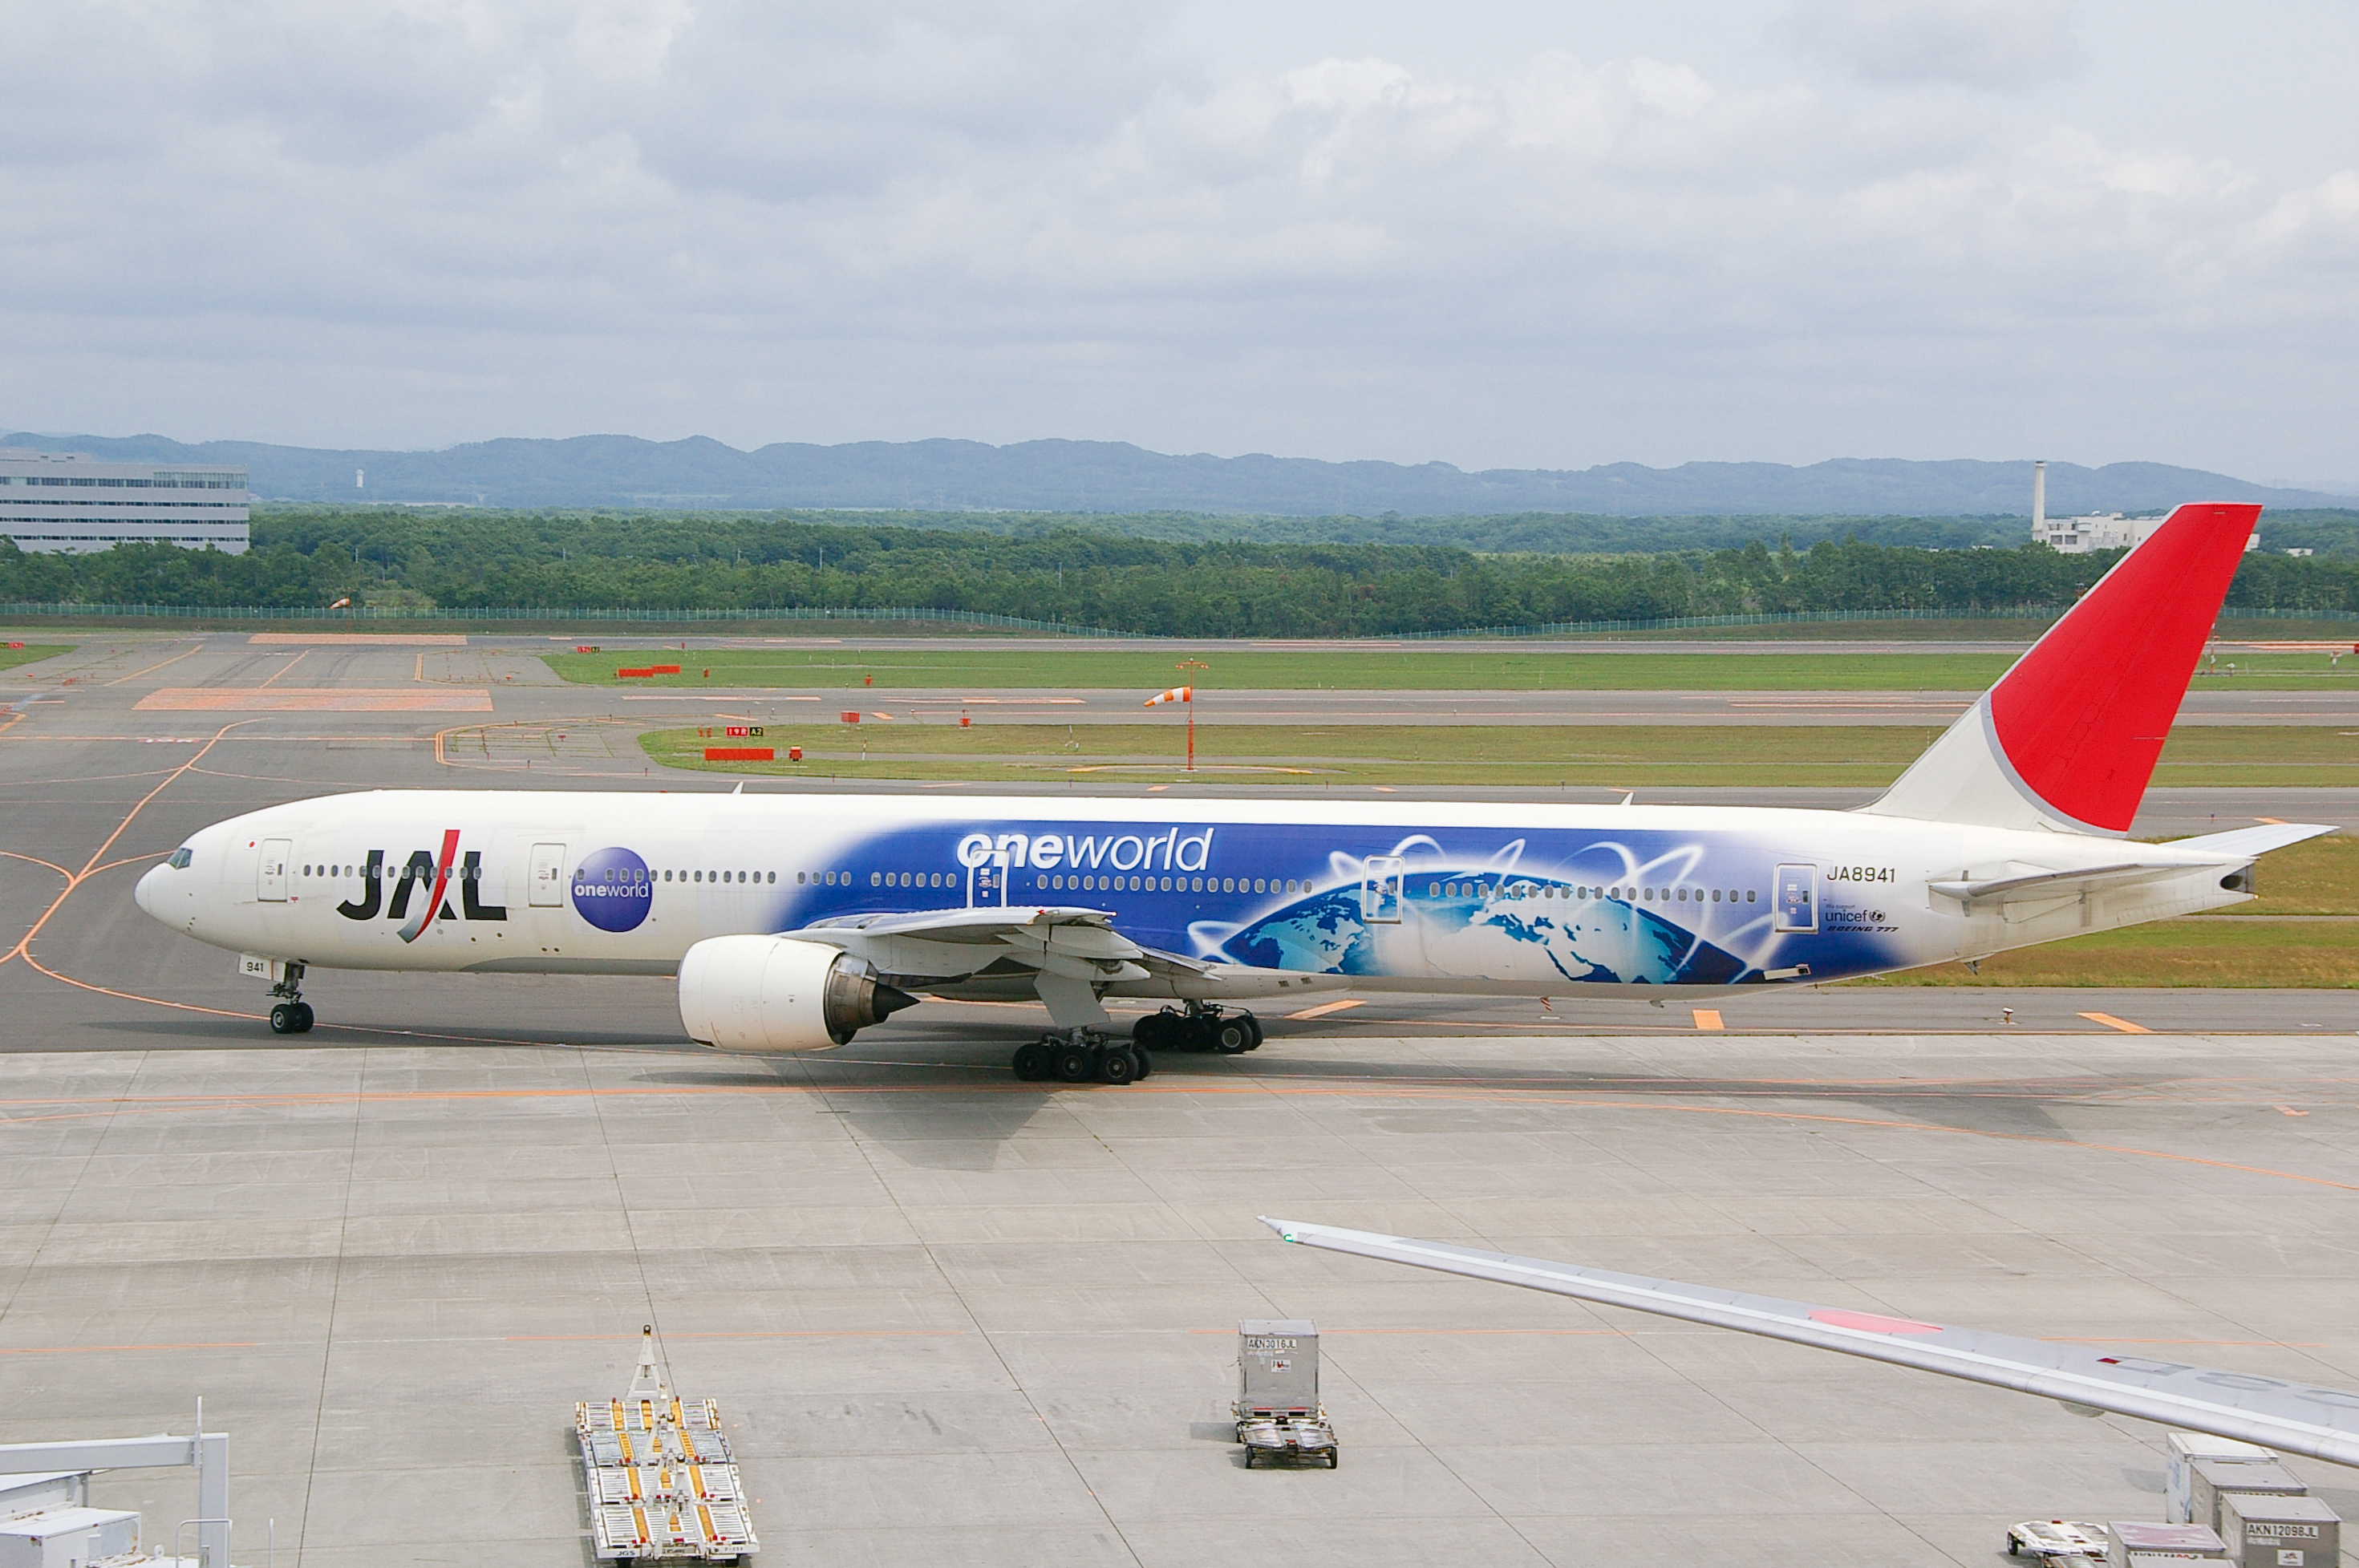 A Boeing 777–300 aircraft with special Oneworld livery taxiing from the tarmac on to the taxiway, with a mountain view on the background